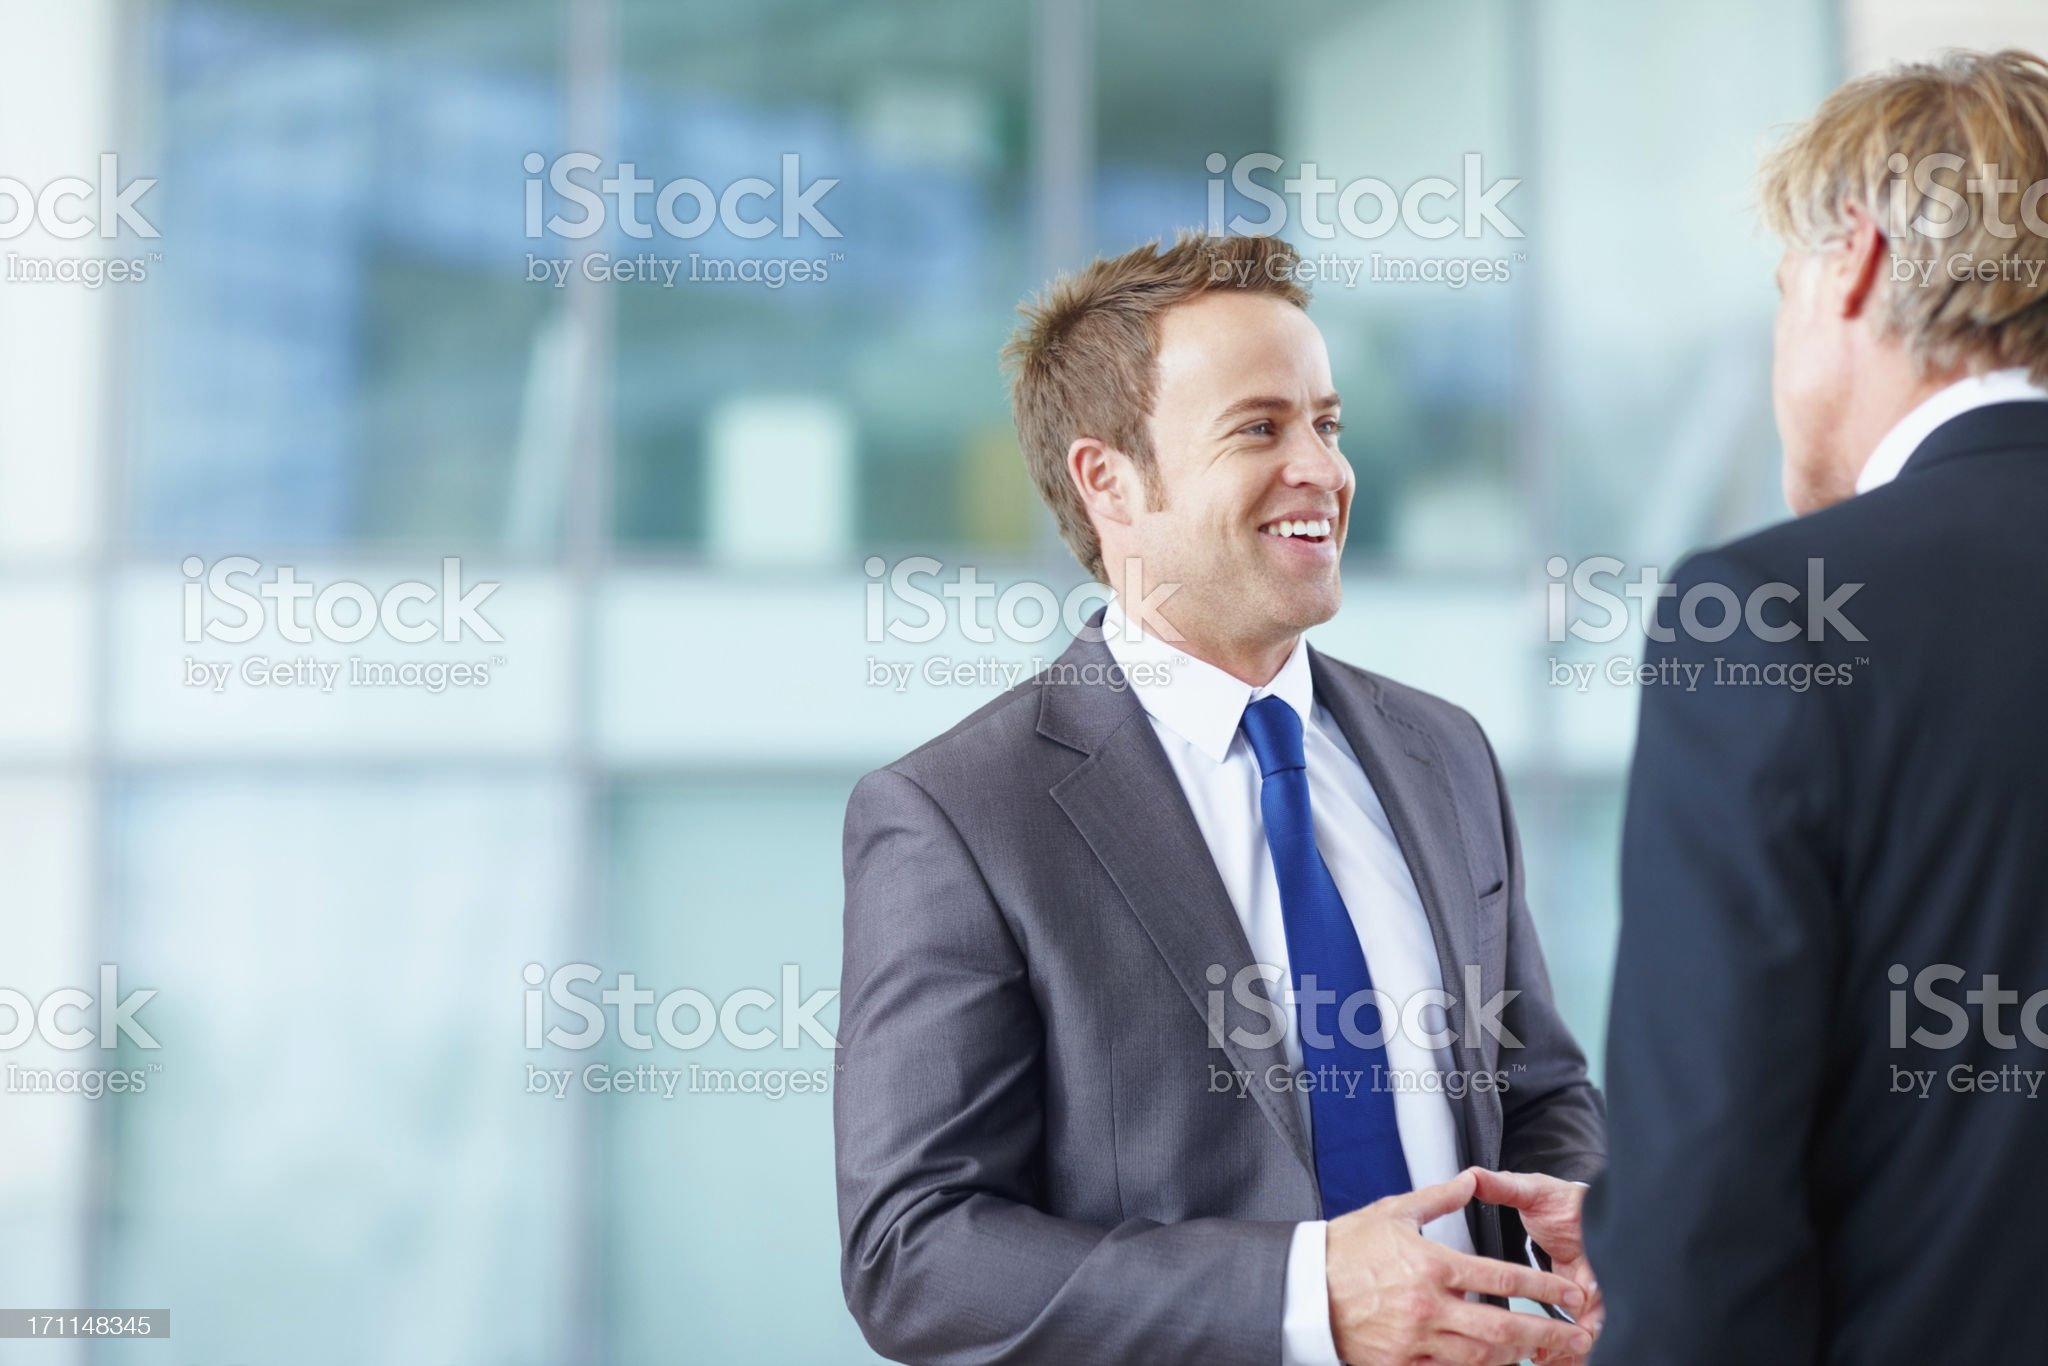 Sharing ideas in the office royalty-free stock photo